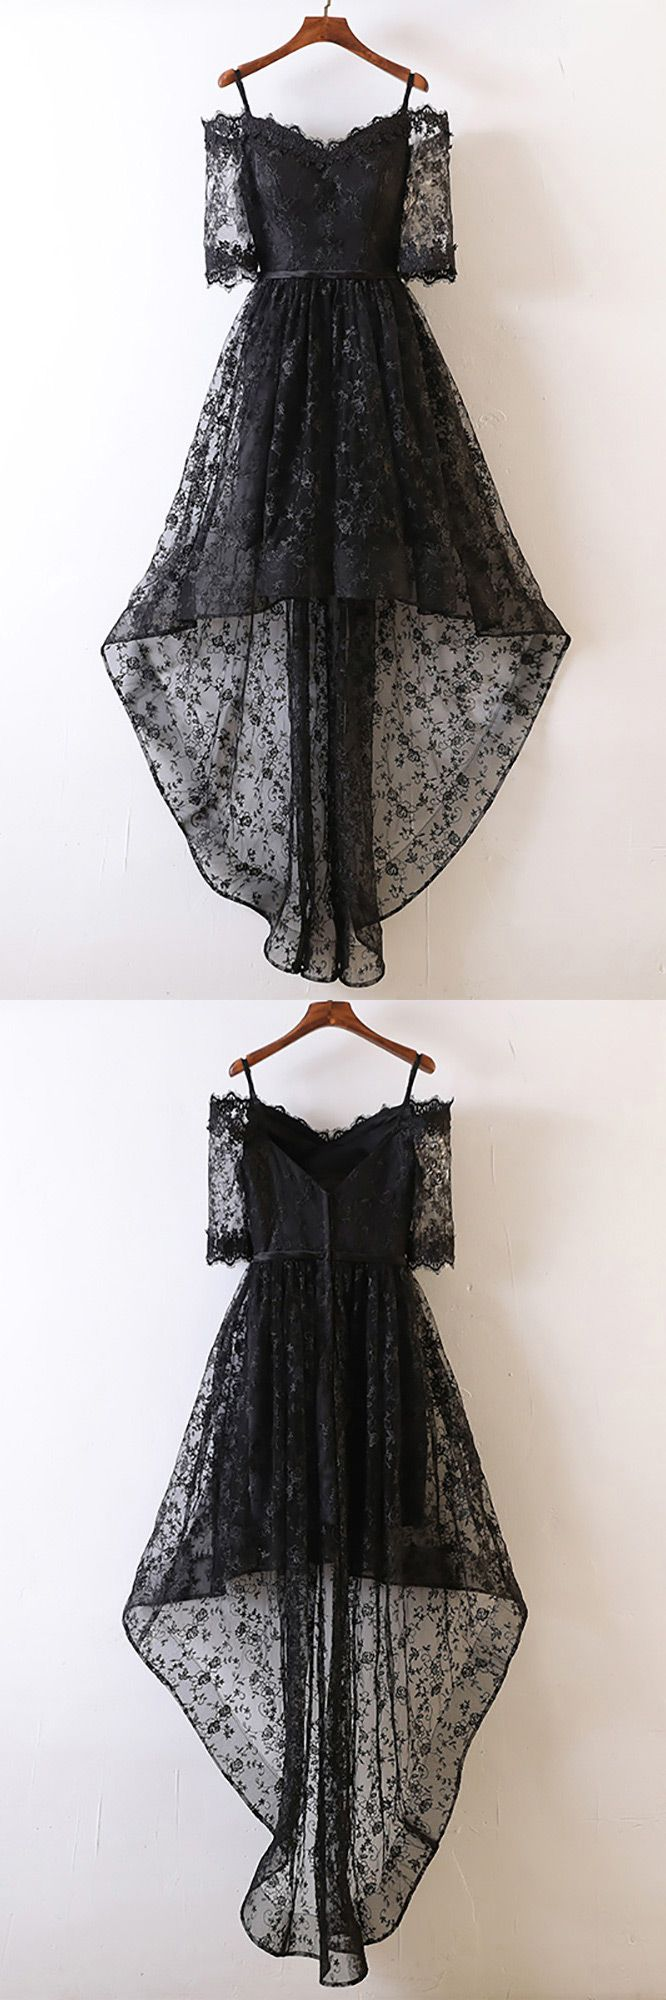 Only $99, Prom Dresses Unique Black High Low Prom Dress Lace With Off Shoulder For Teens #MYX18089 at #GemGrace. View more special Prom Dresses,Homecoming Dresses now? GemGrace is a solution for those who want to buy delicate gowns with affordable prices, a solution for those who have unique ideas about their gowns. Click to shop now!